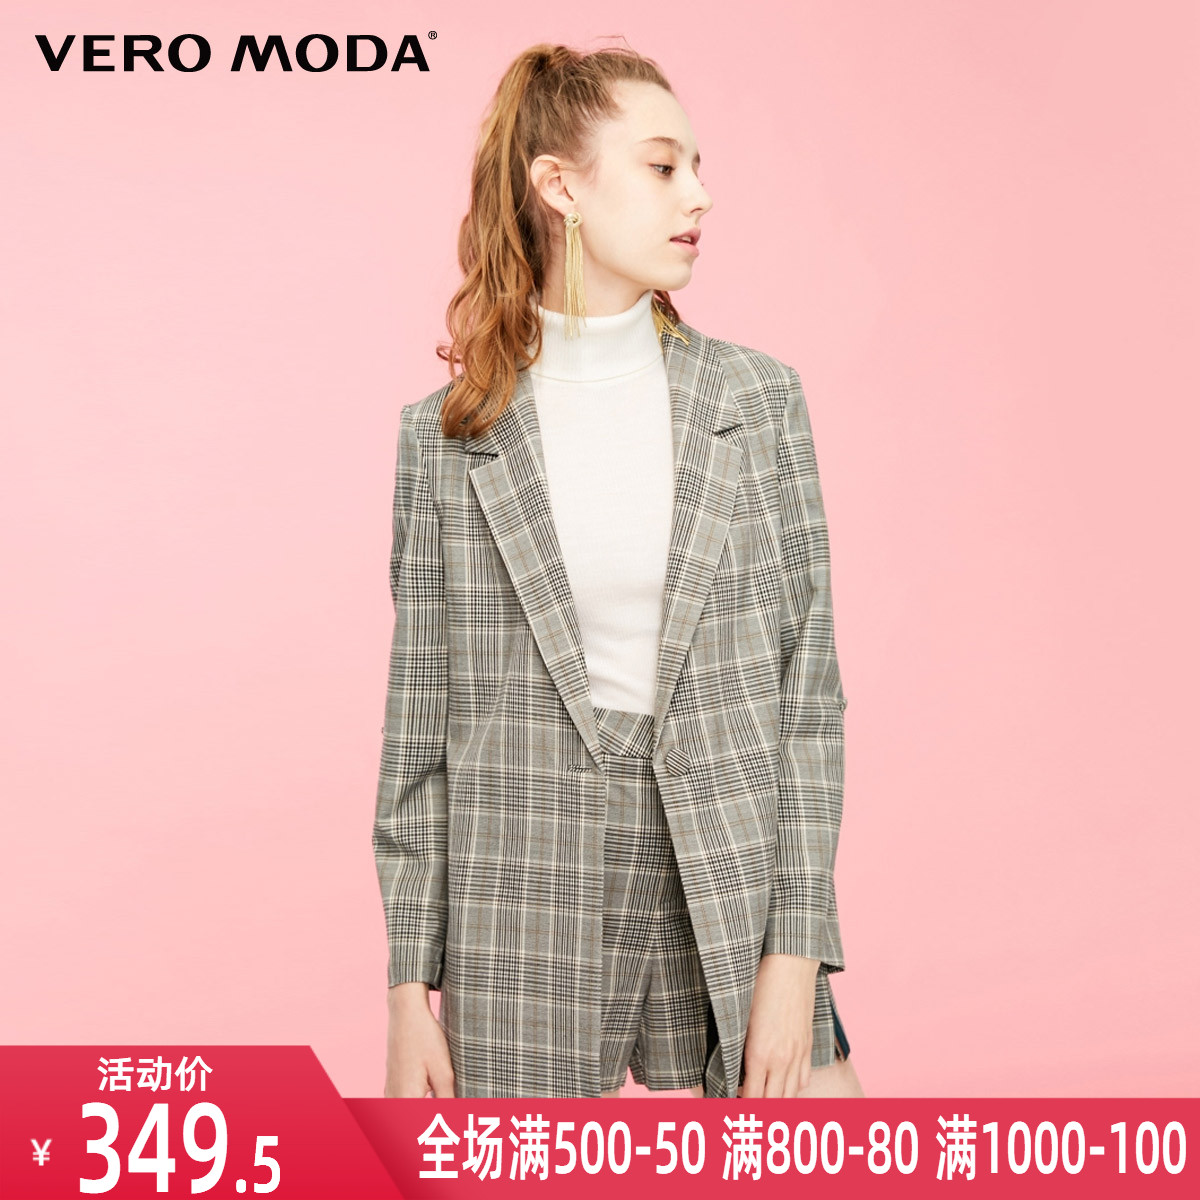 Vero moda2019 autumn and winter plaid fabric Lapel one button suit for women 319308502